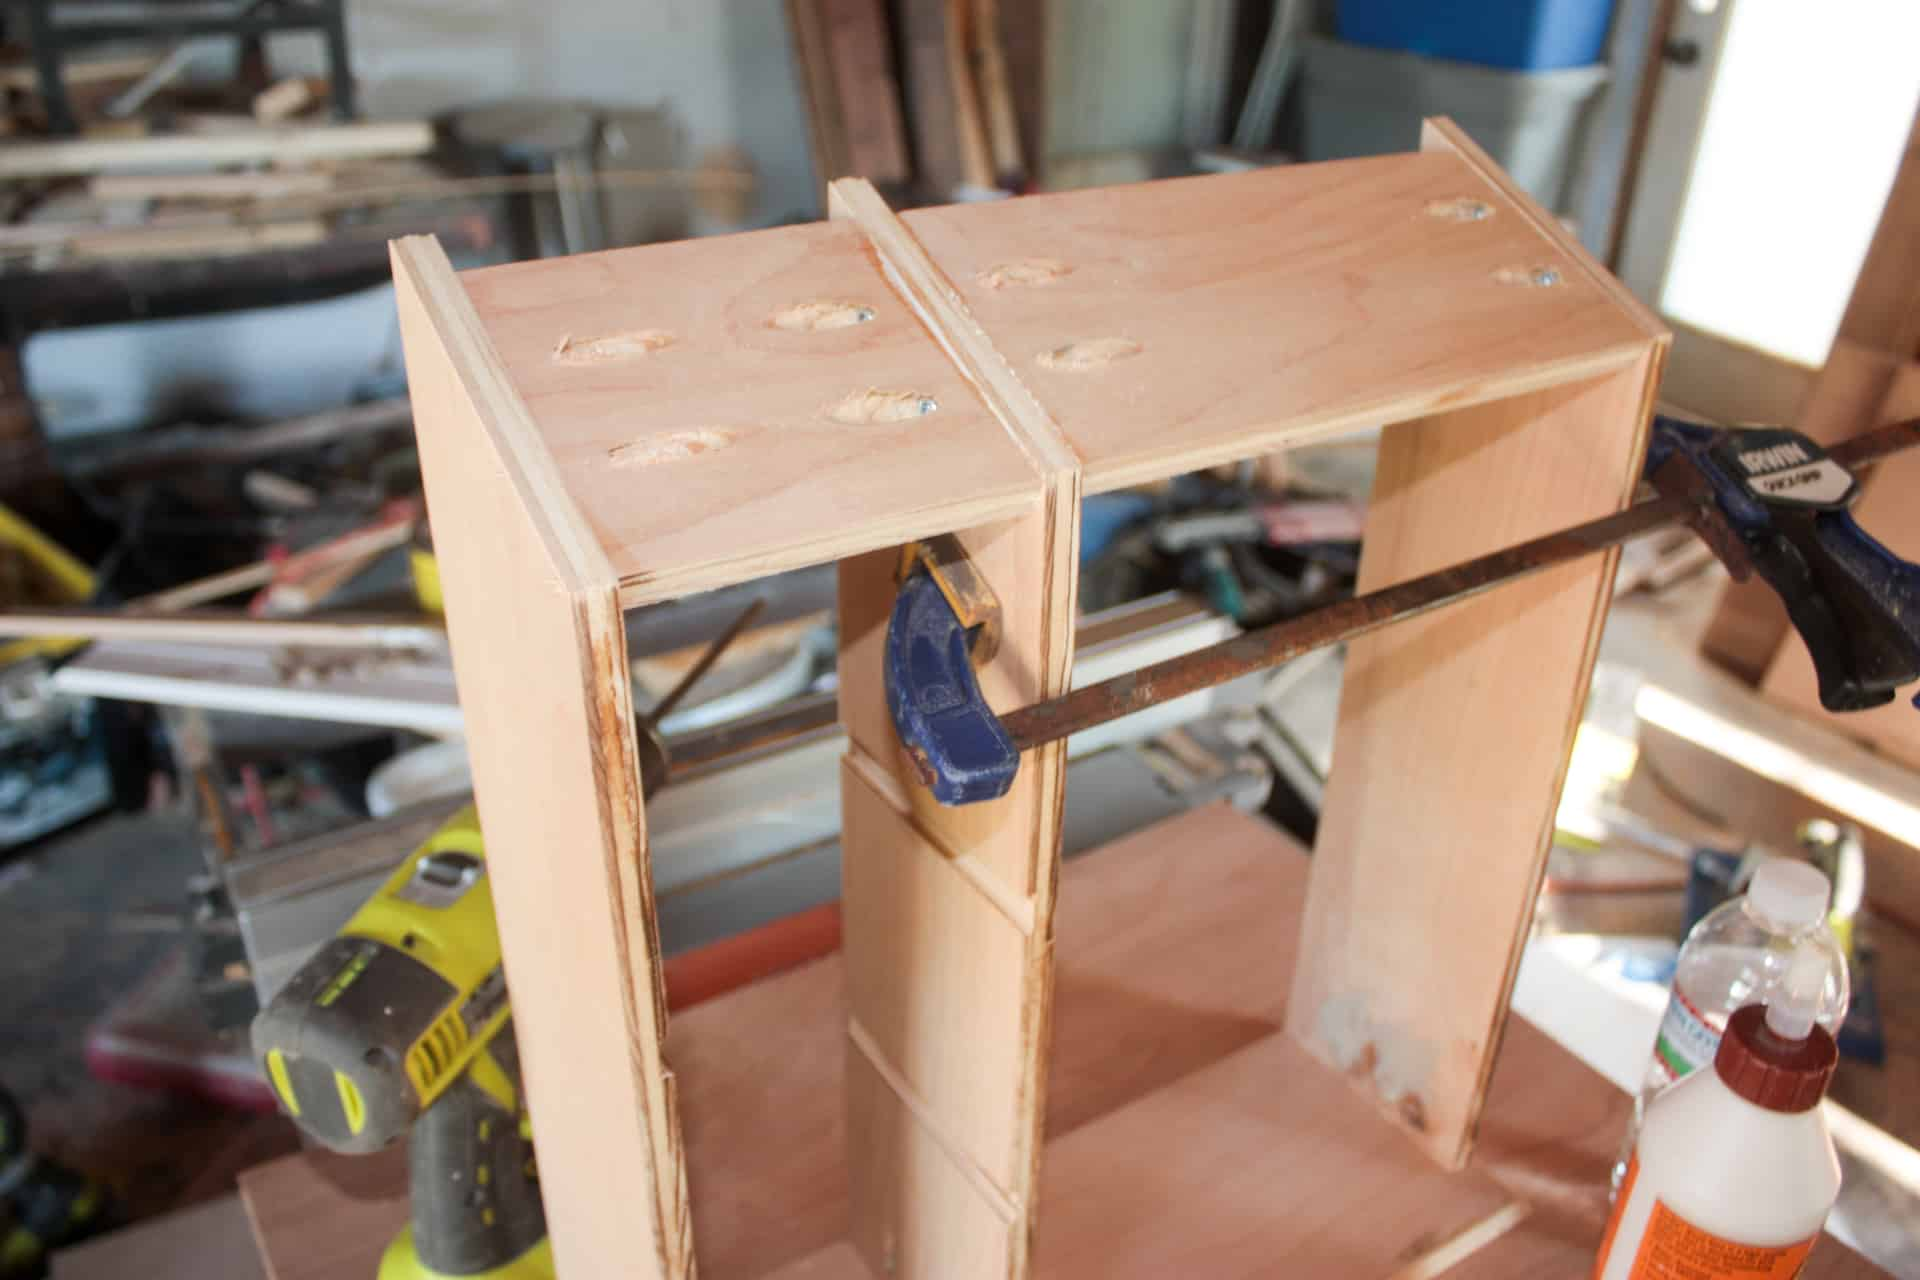 https://www.buildsomething.com/plans/P81D49B36A4027294/Dollhouse-Jewelry-Cabinet